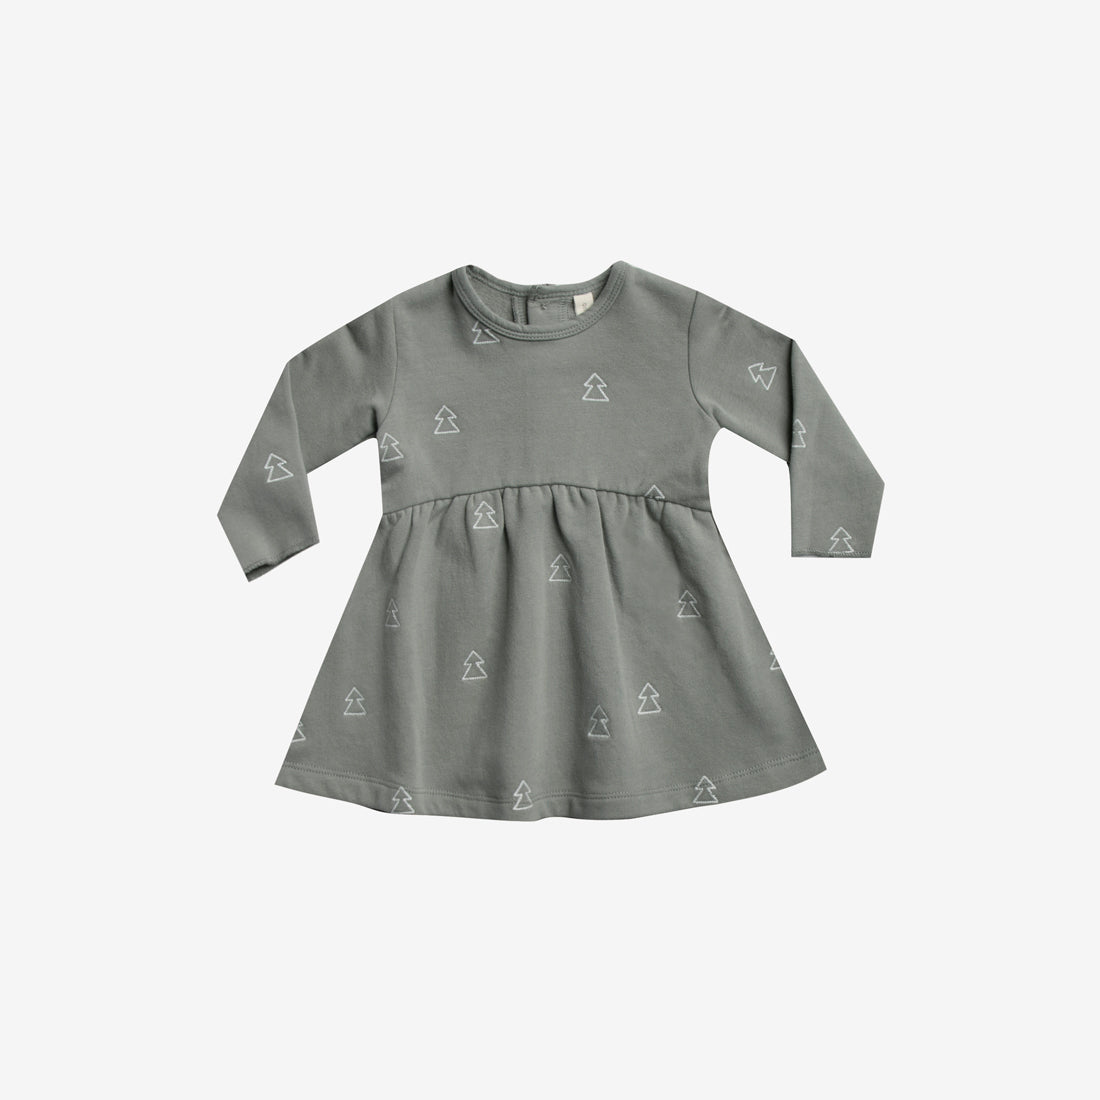 Embroidered Organic Fleece Dress - Eucalyptus Trees